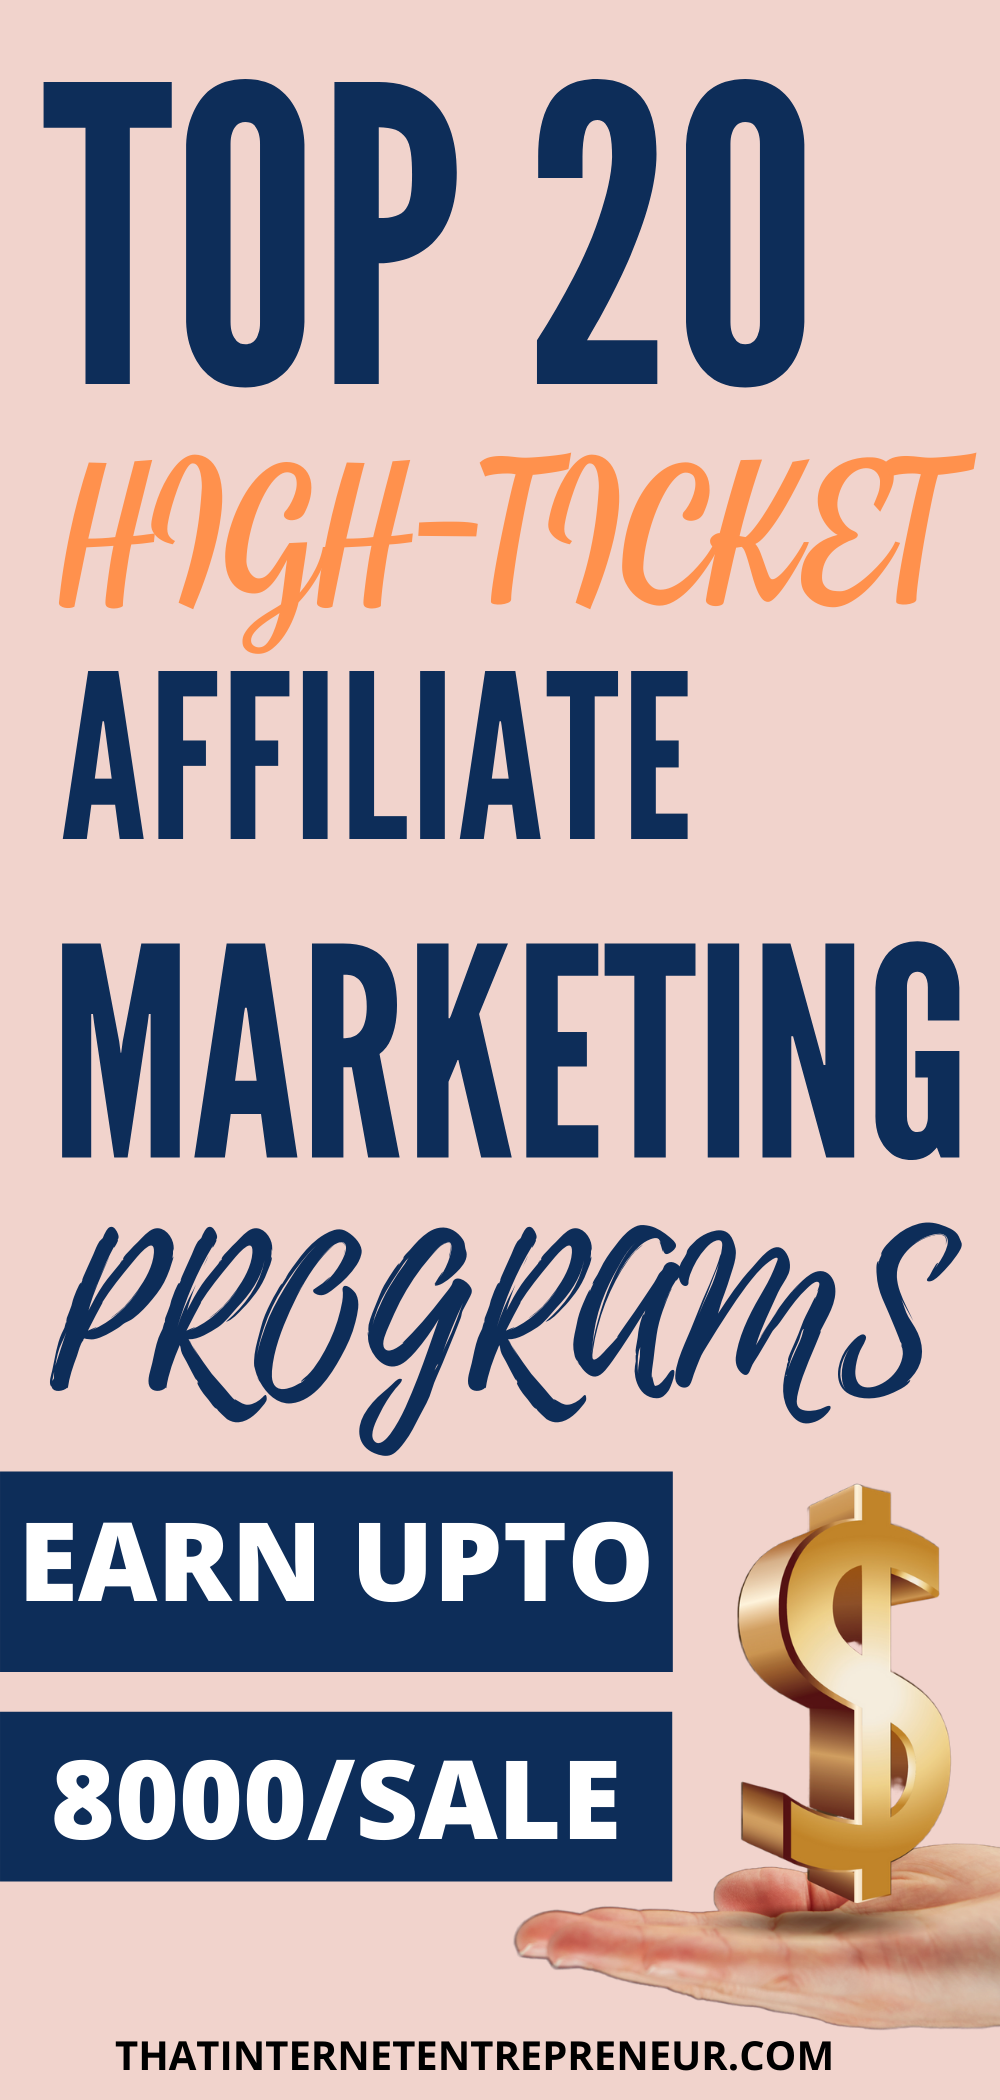 Top 20 HighTicket Affiliate Marketing Programs to Join in